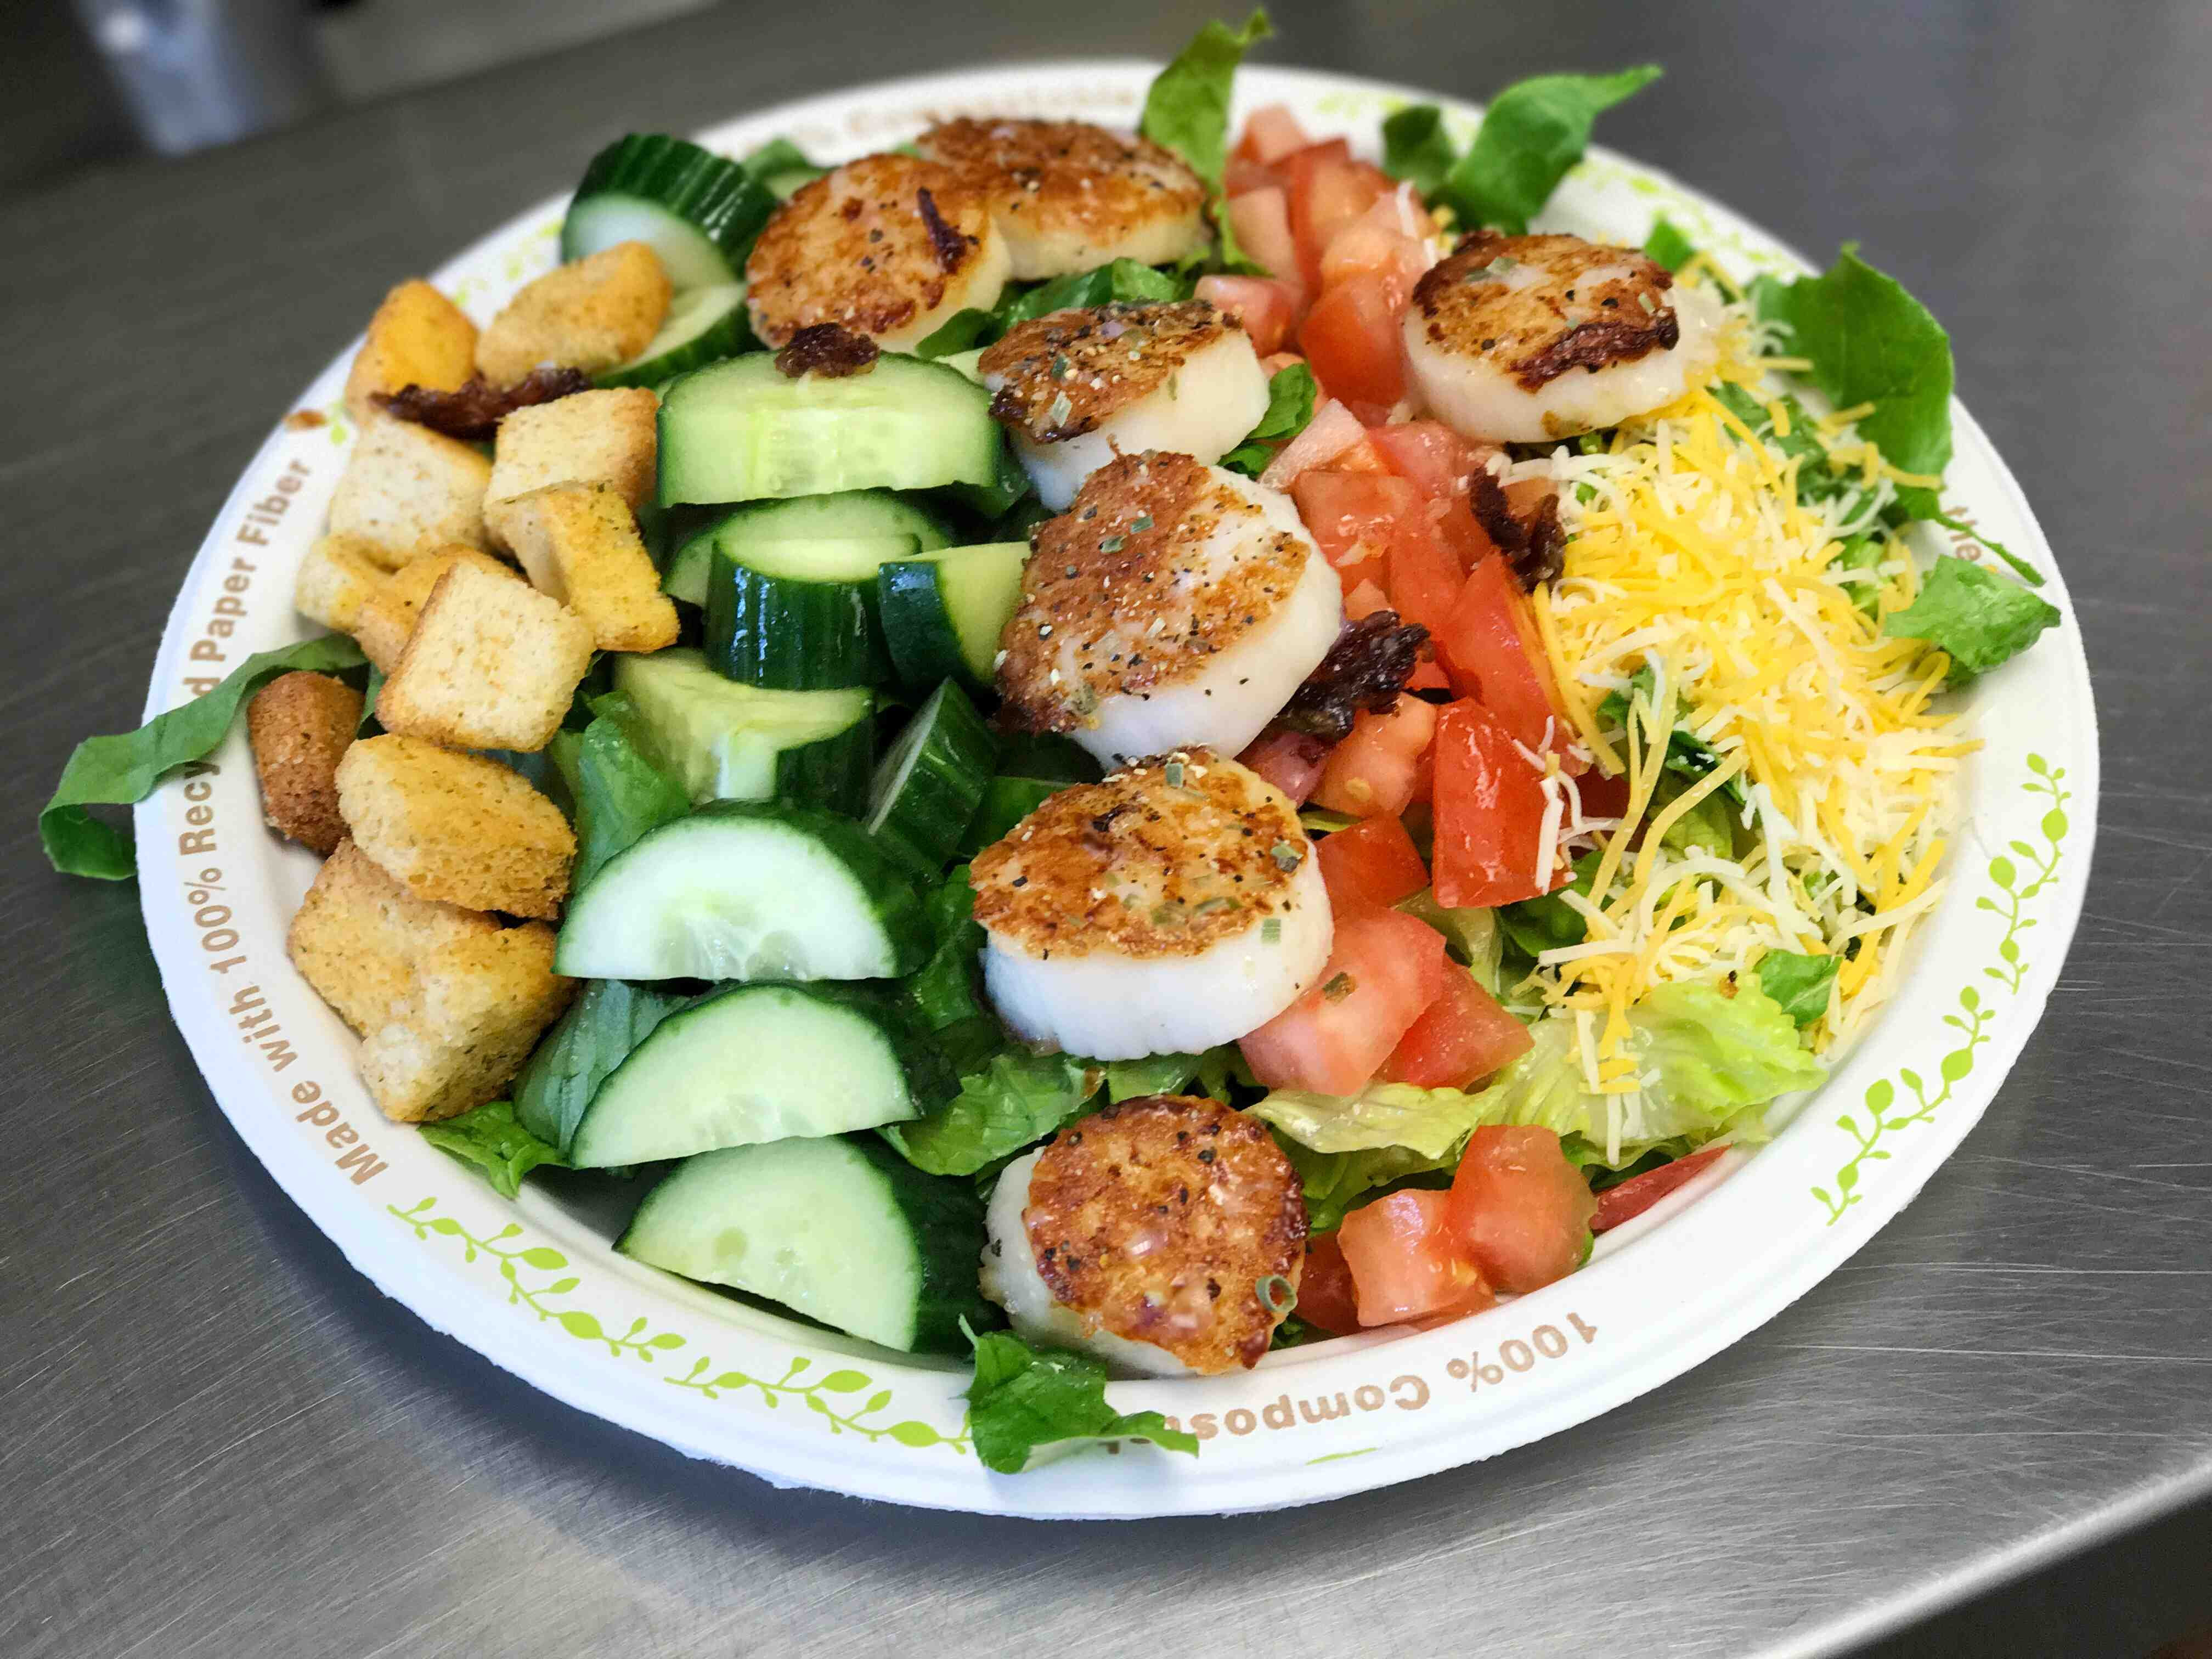 Scallop salad from the Beach Plum in North Hampton, NH.